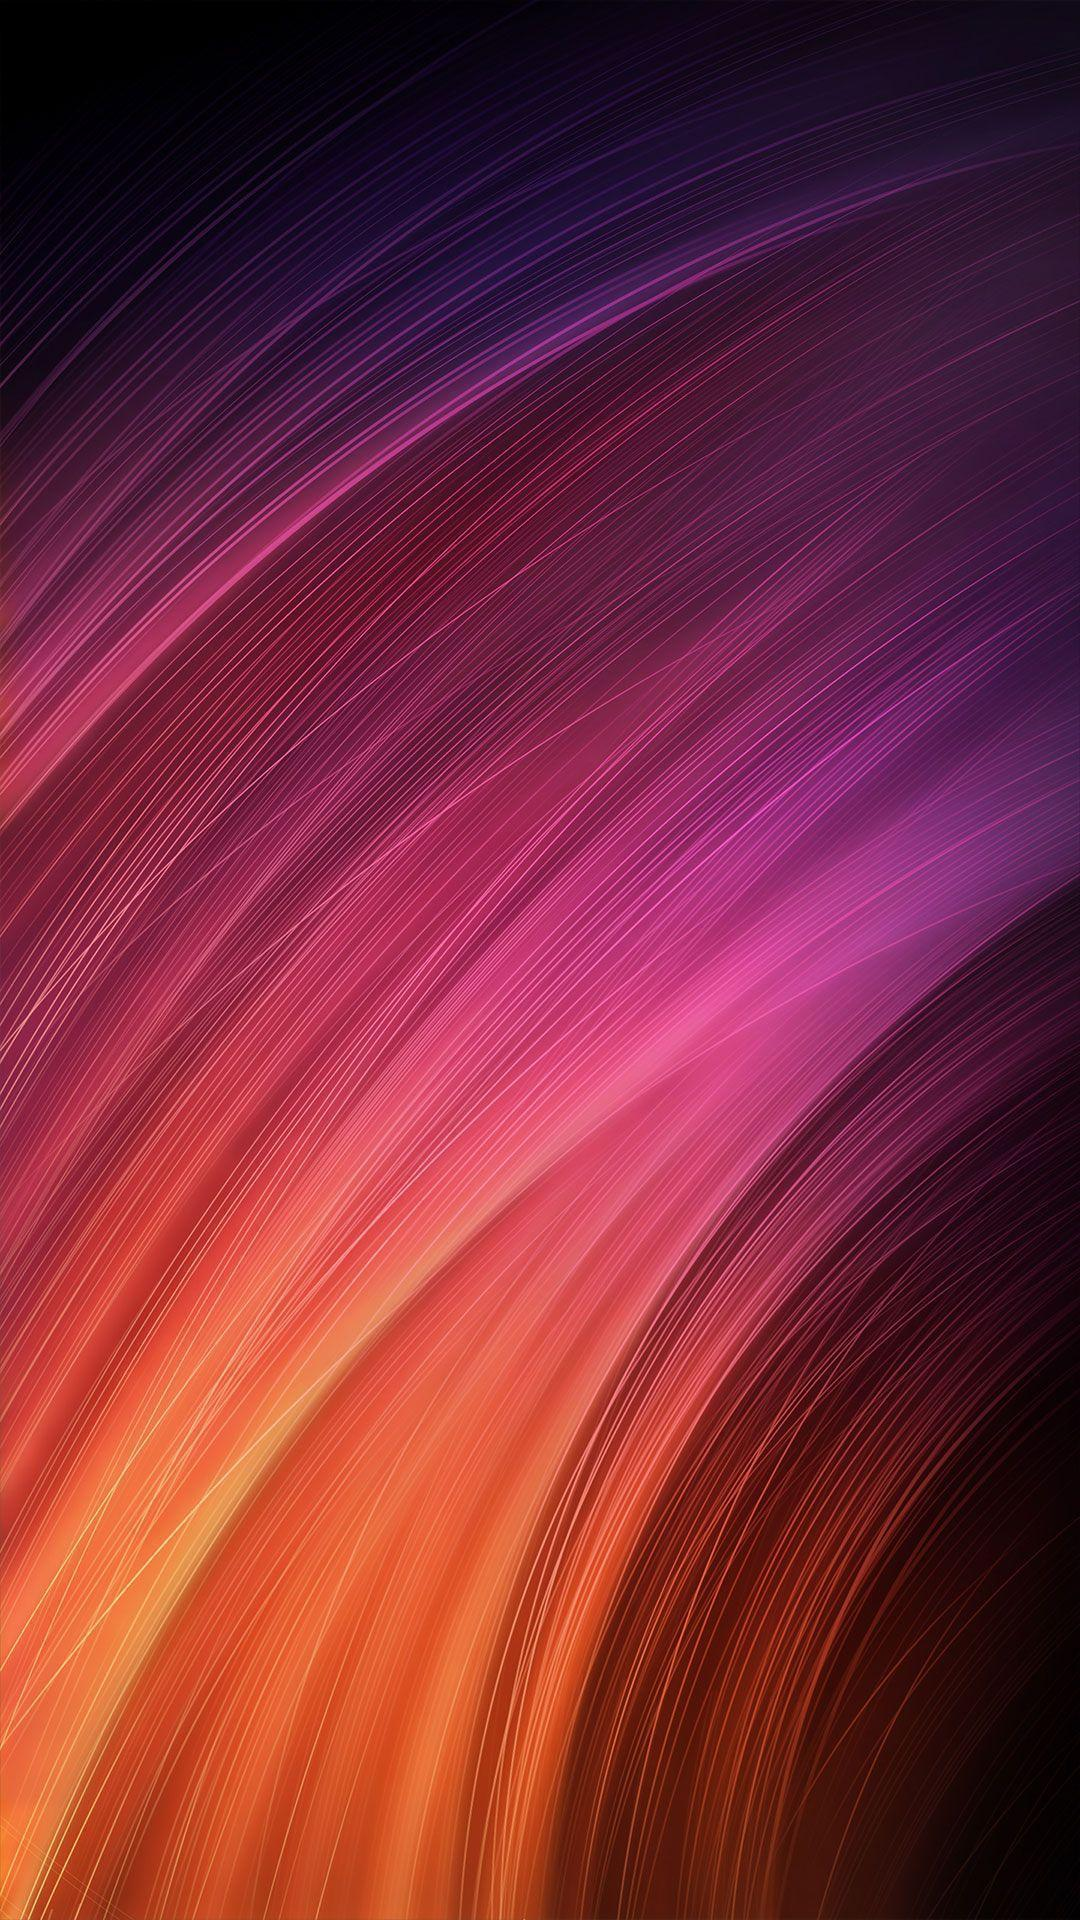 Xiaomi Redmi Note 4 Wallpapers - Wallpaper Cave